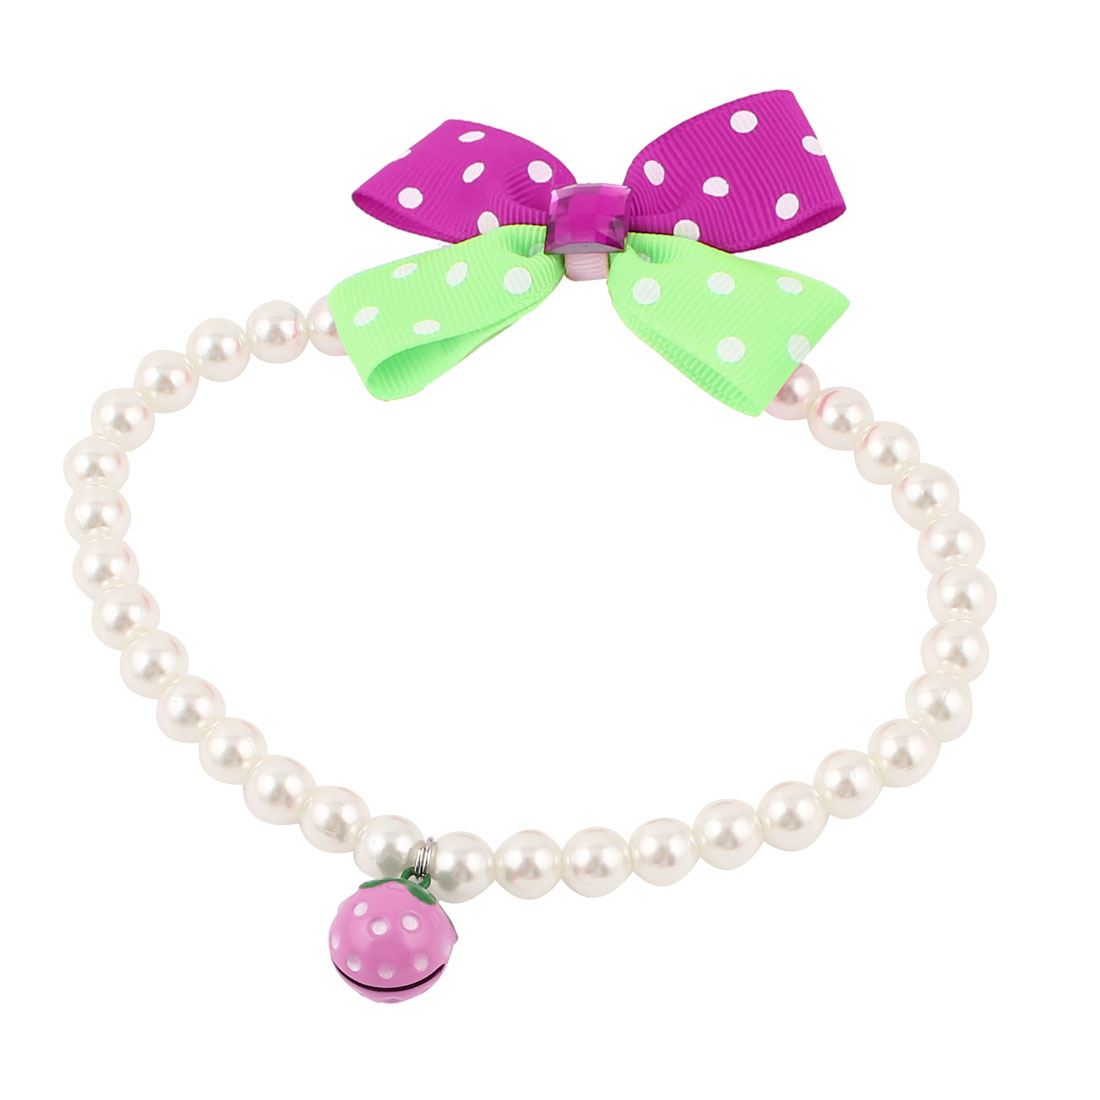 Metal Bell Pendant Bowknot Accent Pet Plastic Beads Pearls Collar Necklace White Green Fuchsia L